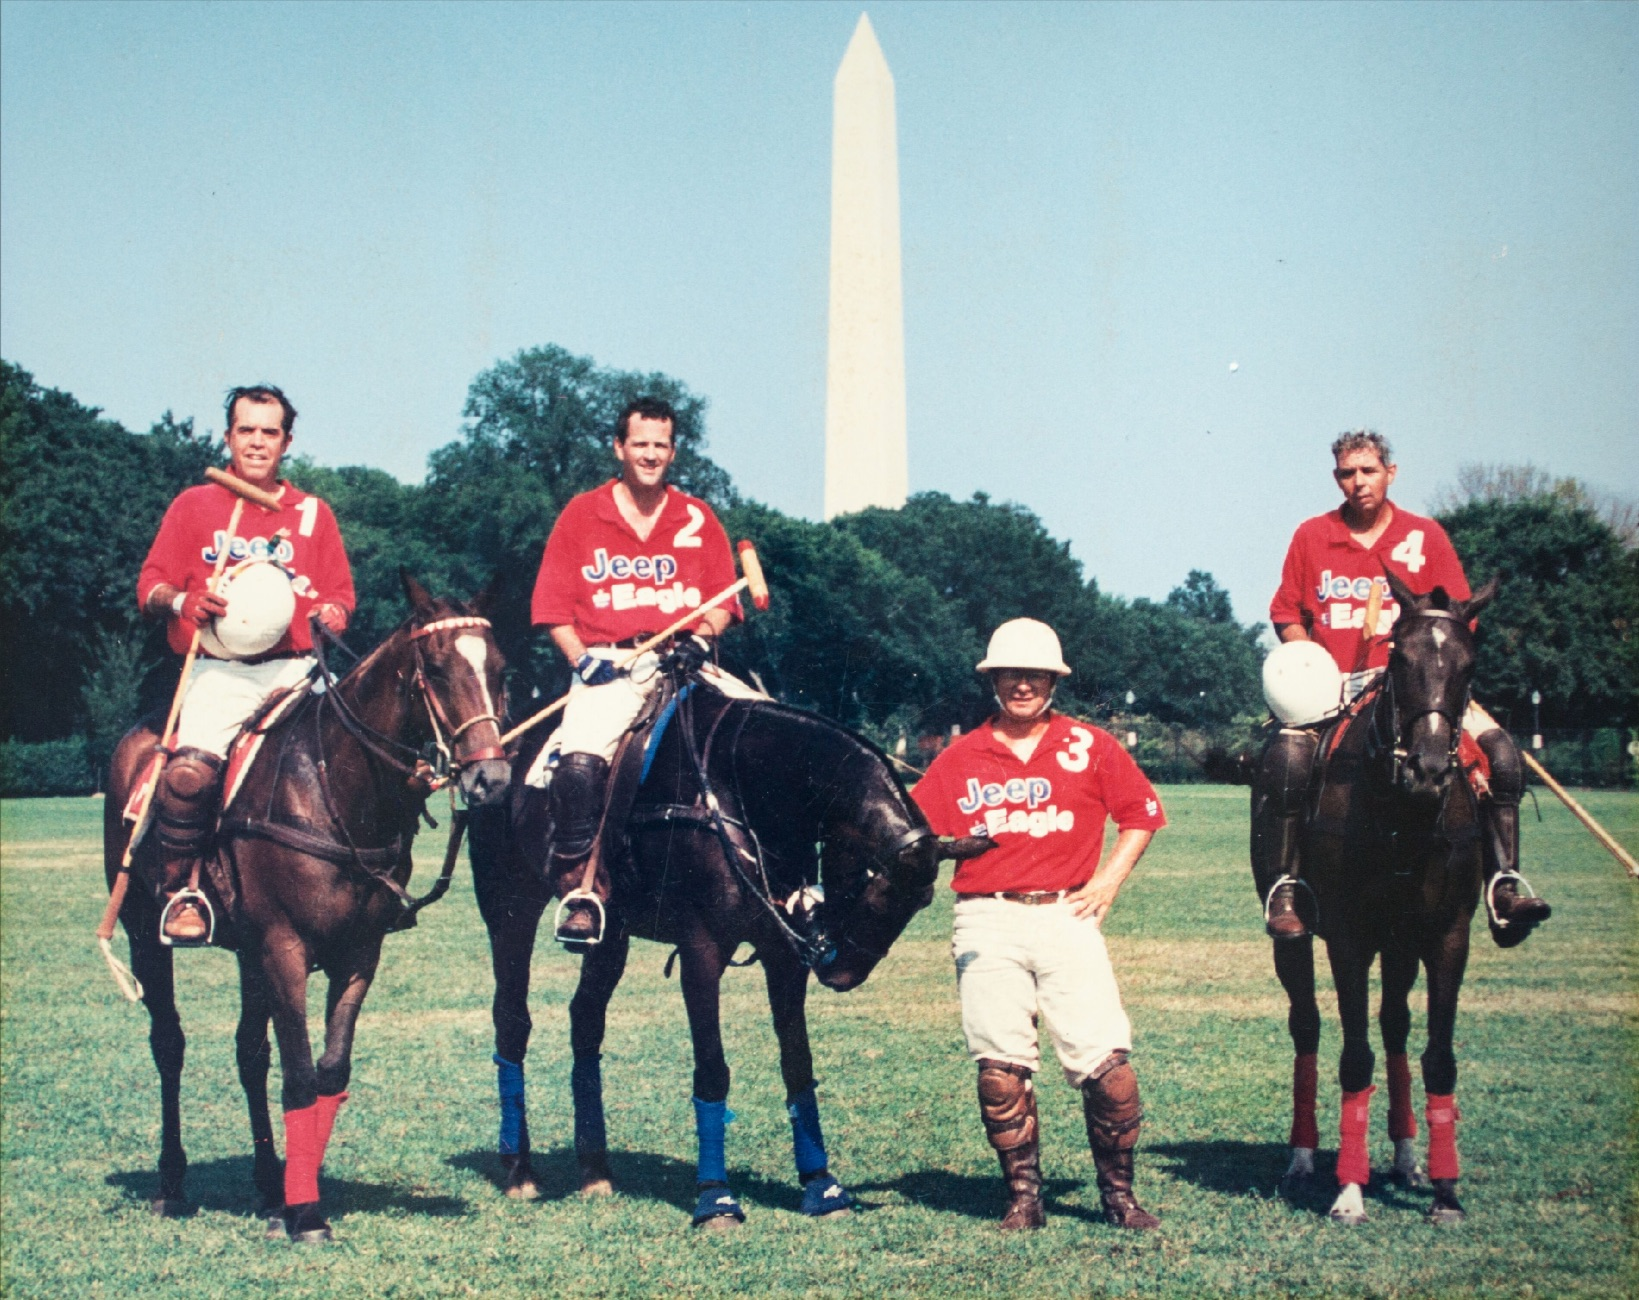 Before the polo fields in The Plains, Great Meadow Polo Club's home field was the National Mall. Club president Dick Vargé, founder Peter Arundel, a pro, and member Tom Leonard pose for a photo in the 1998 season. Courtesy of Peter Arundel.